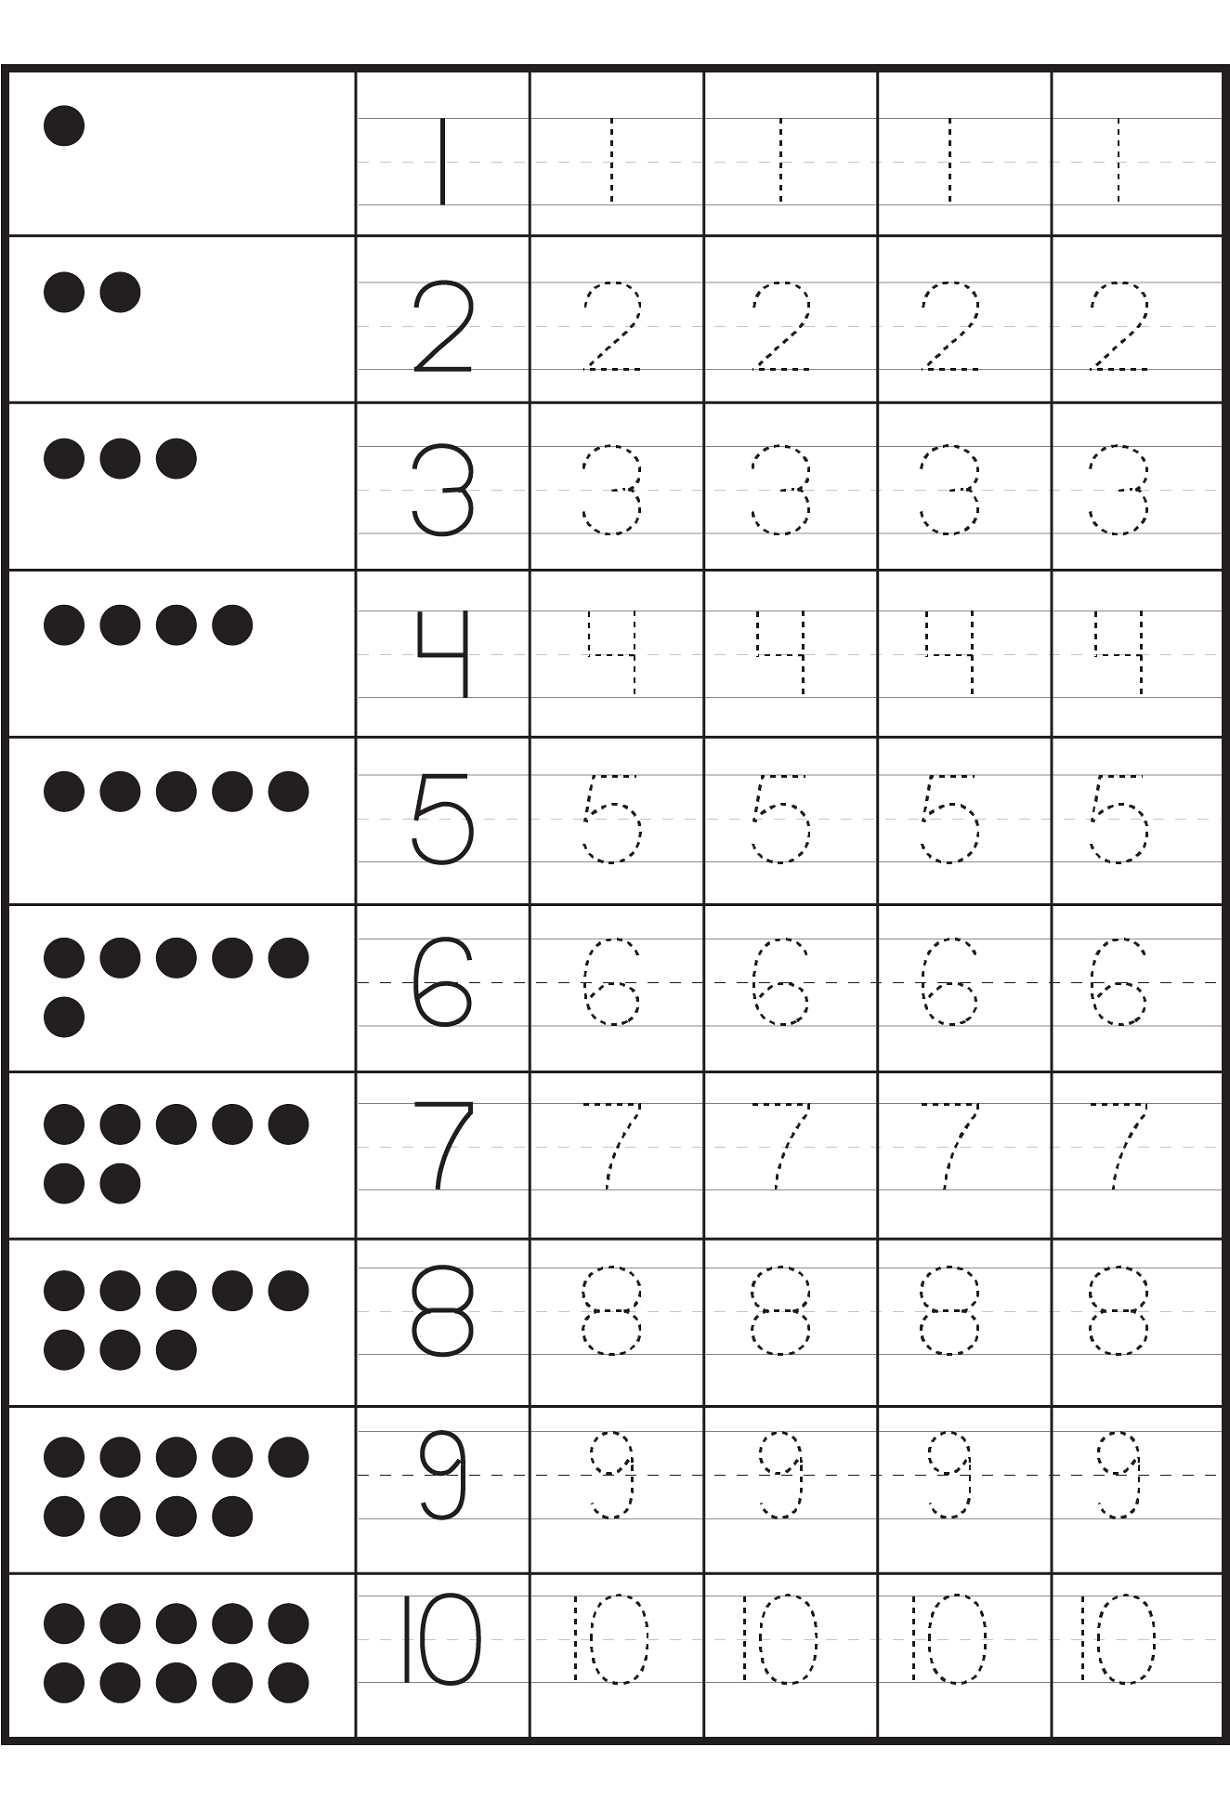 worksheet Number Worksheet tracing numbers 1 10 worksheets activity shelter kids number that you can save and print for your childrens activity